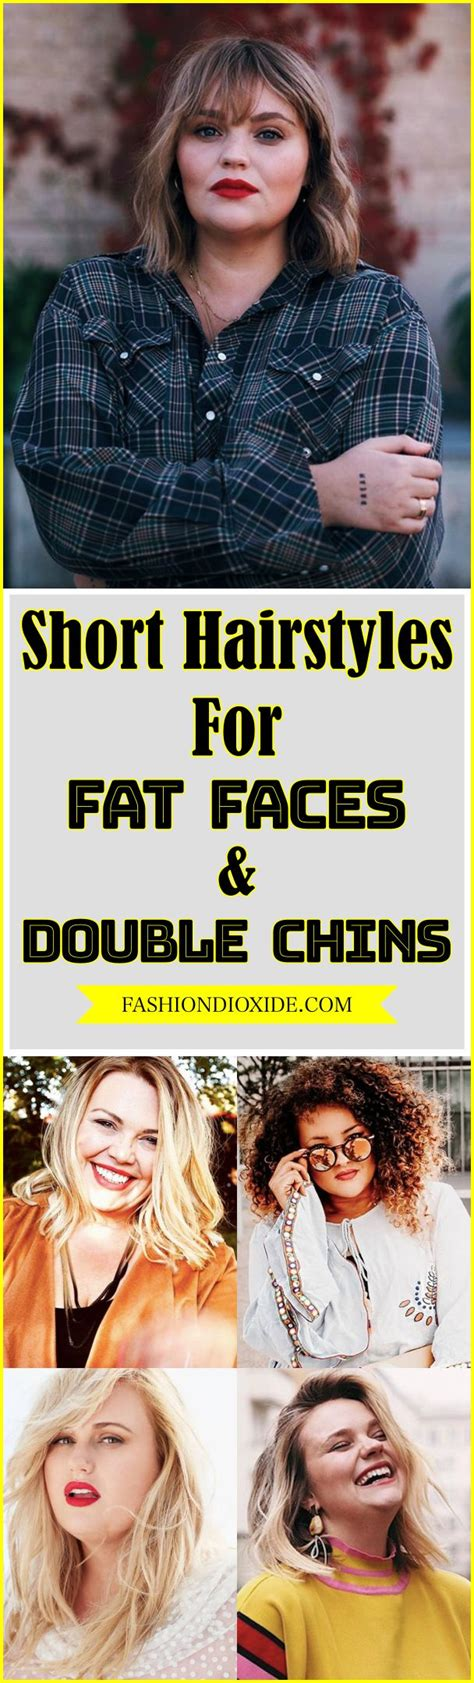 100 short hairstyles for fat faces double chins hair hairstyles for fat faces short hair